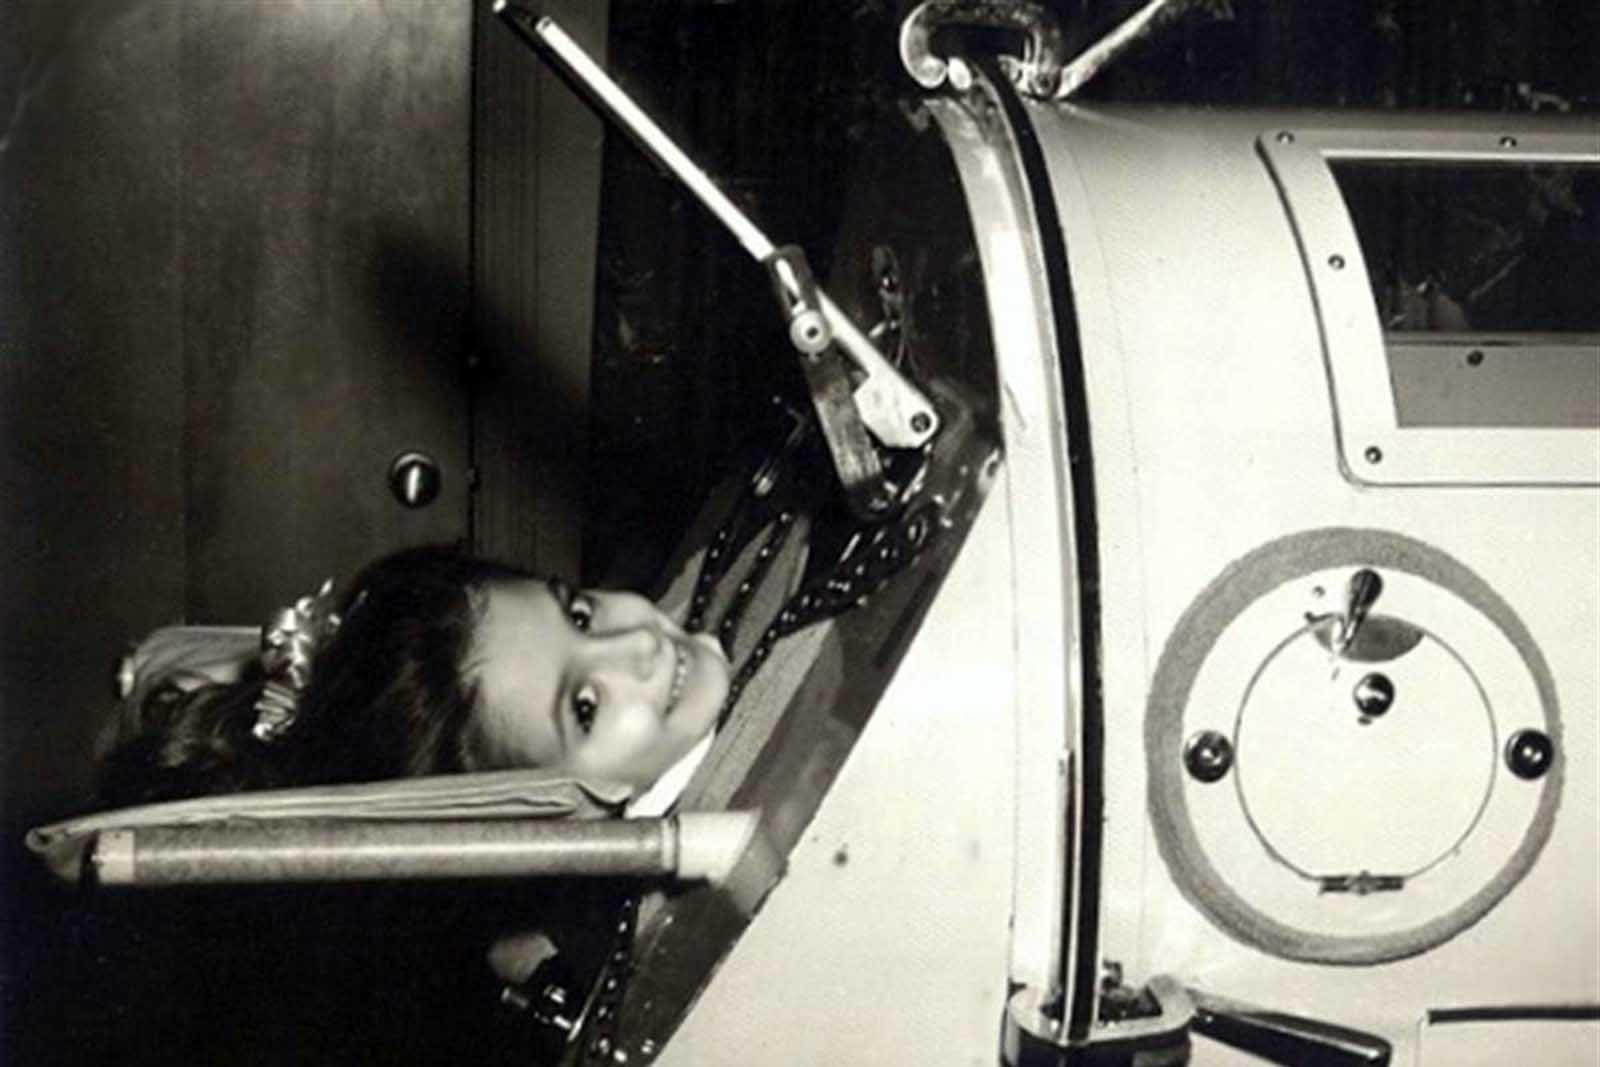 Martha Ann Lillard was just 5 in 1953 when she became paralyzed by polio and had to use an iron lung respirator. She spent six decades in the 800-pound device.